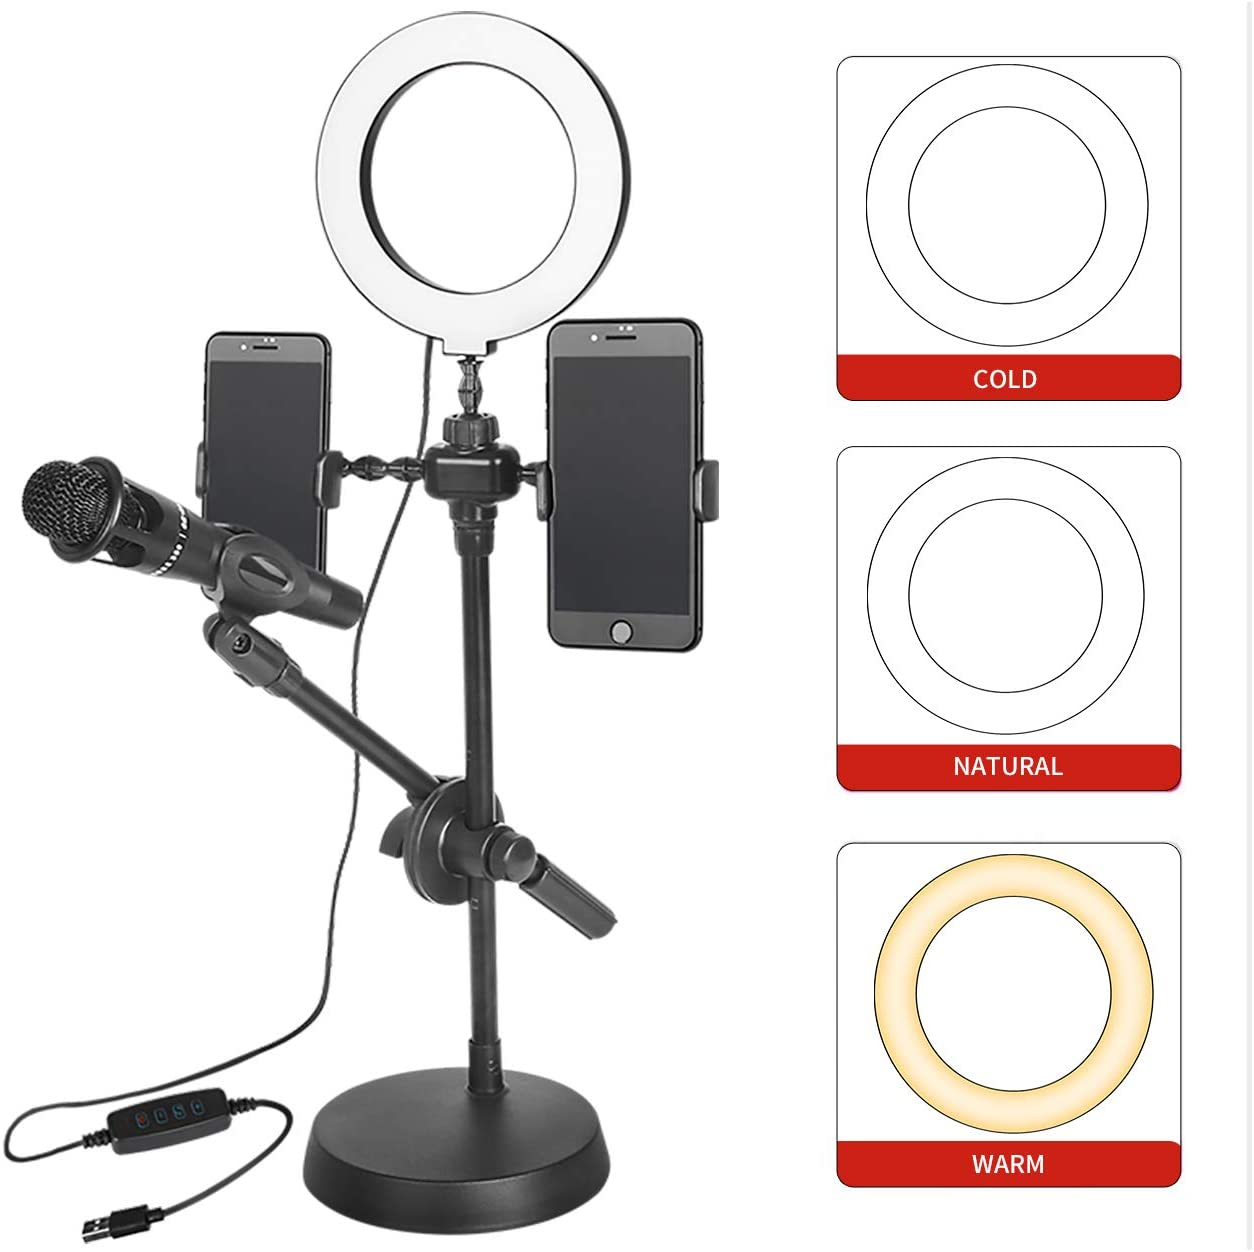 Depusheng Selfie Ring Light with Phone Holder and Microphone Stand 3 Light Modes 10 Brightness Level for Video Live Stream Broadcast USB Powered